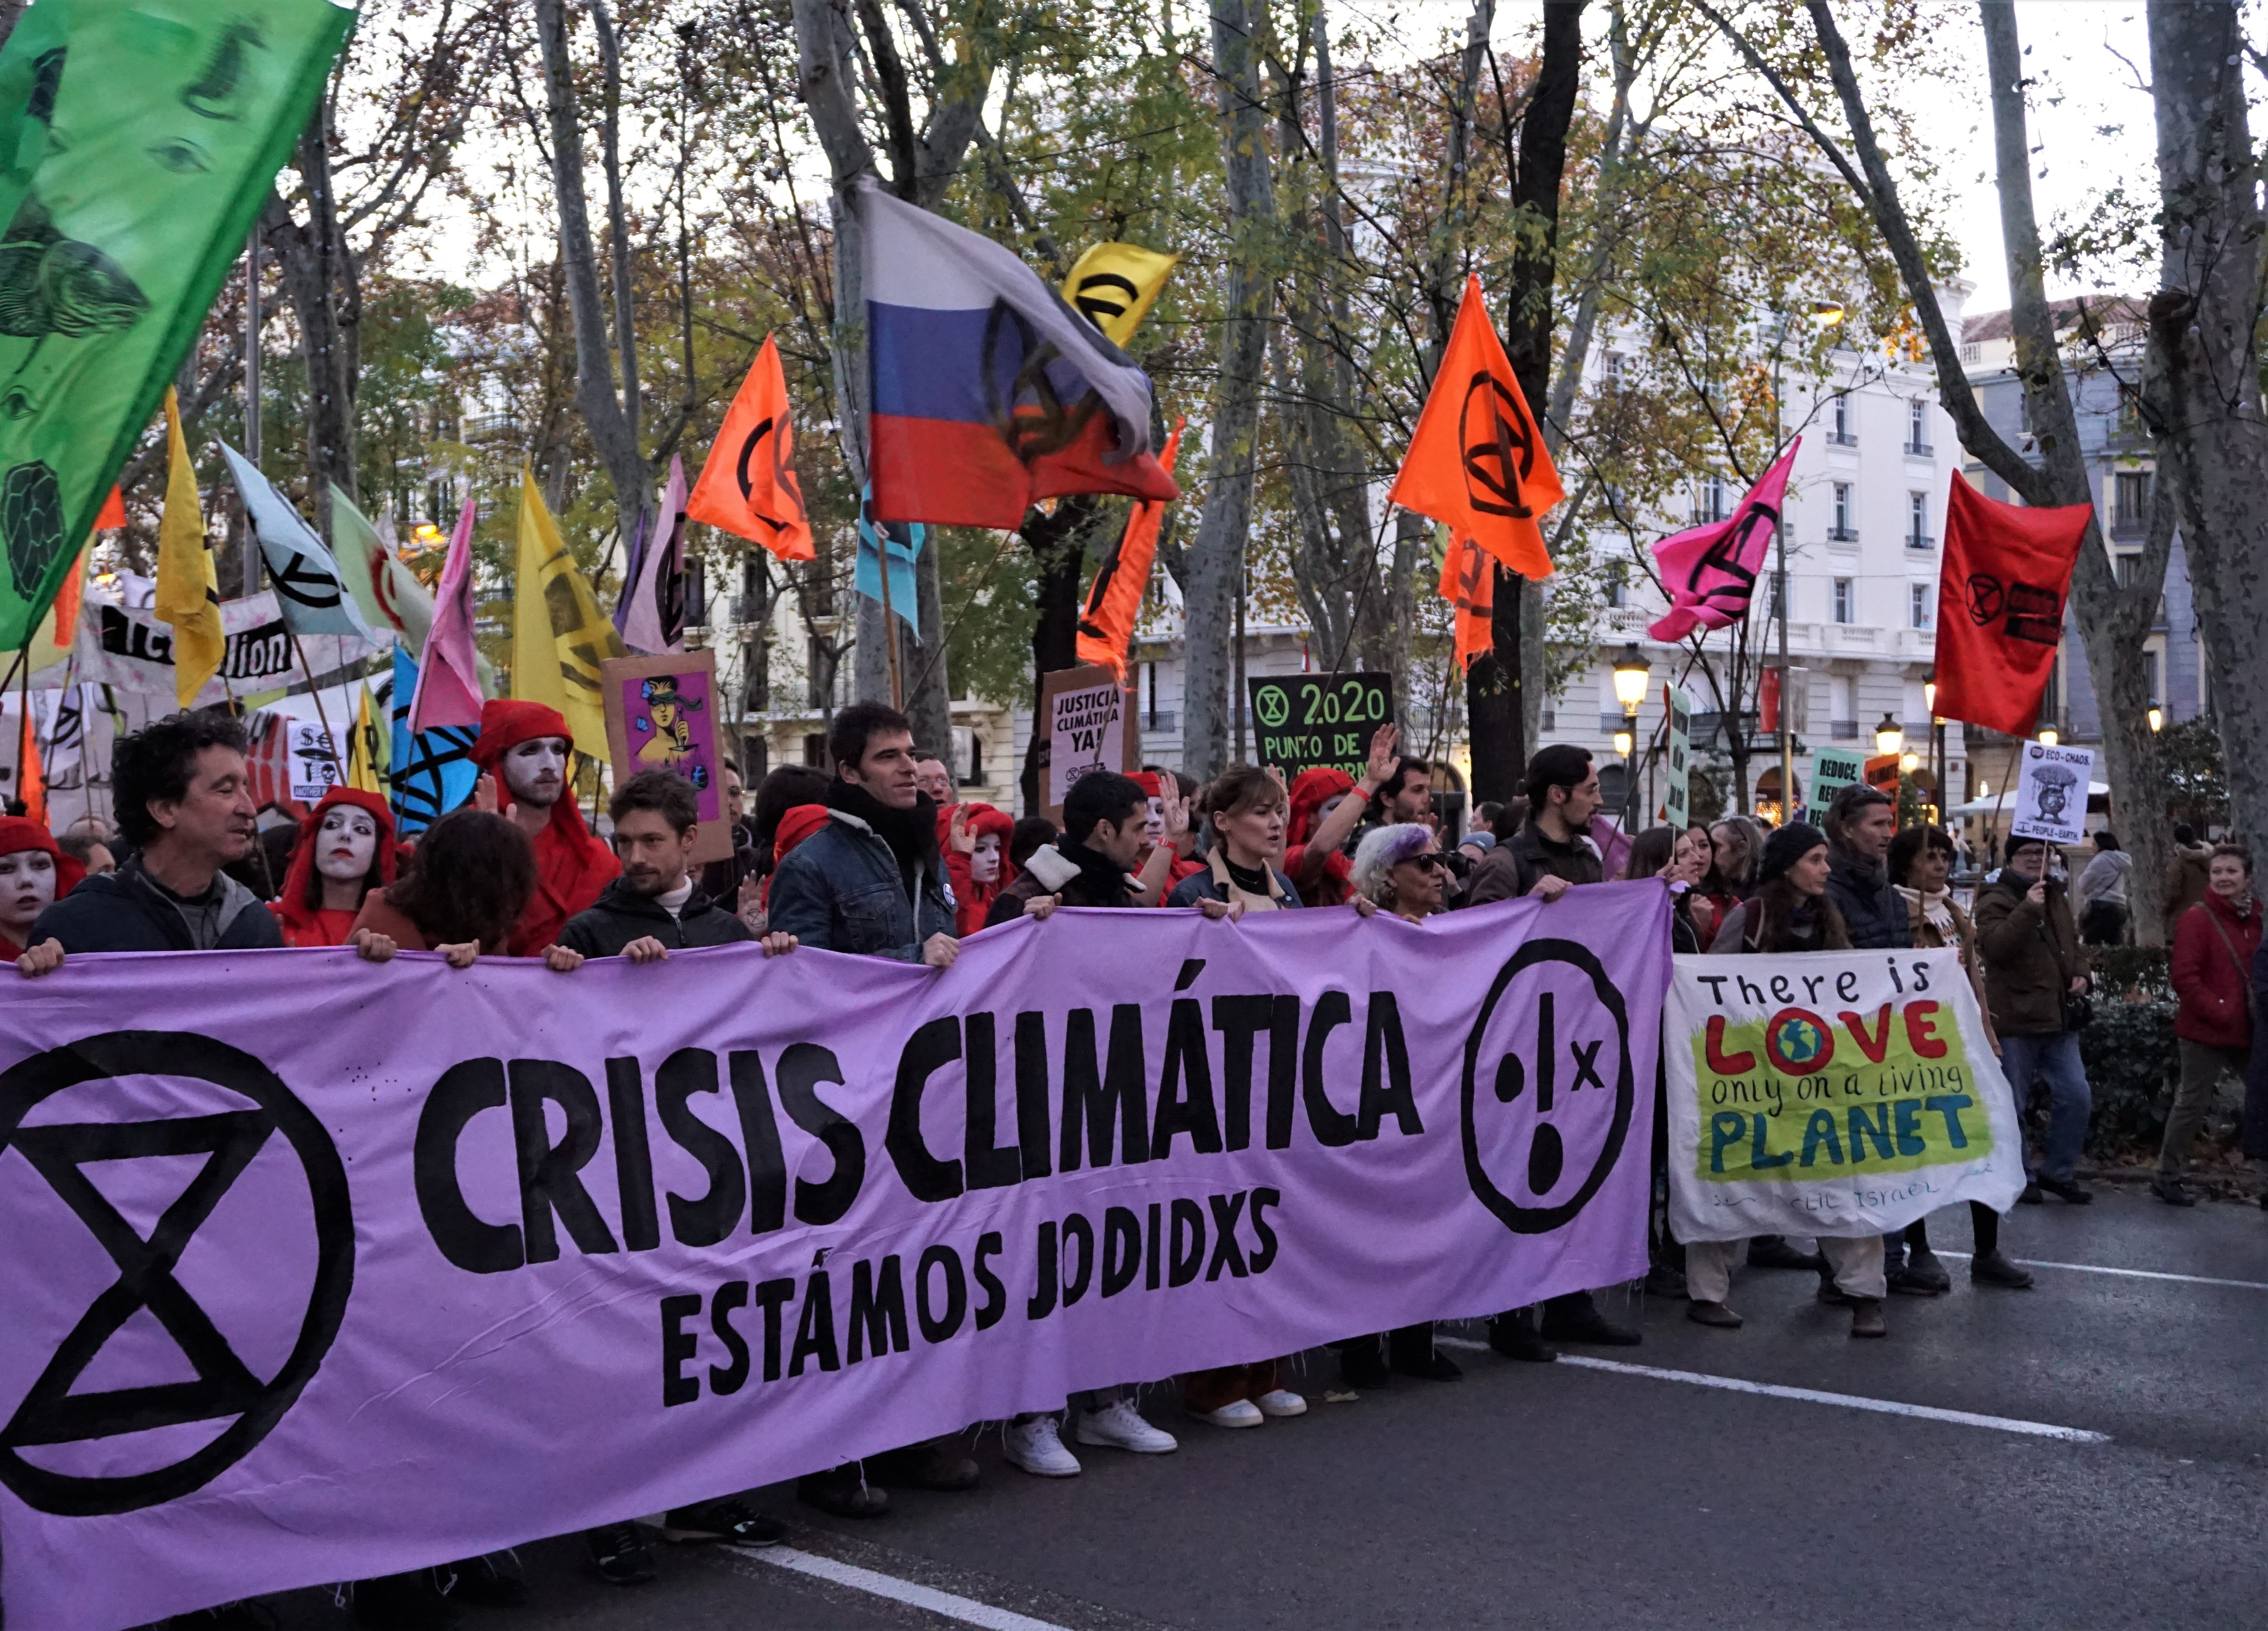 Climate March in the streets of Madrid on December 6th 2019 (Image Credit: Julia Ramsauer)